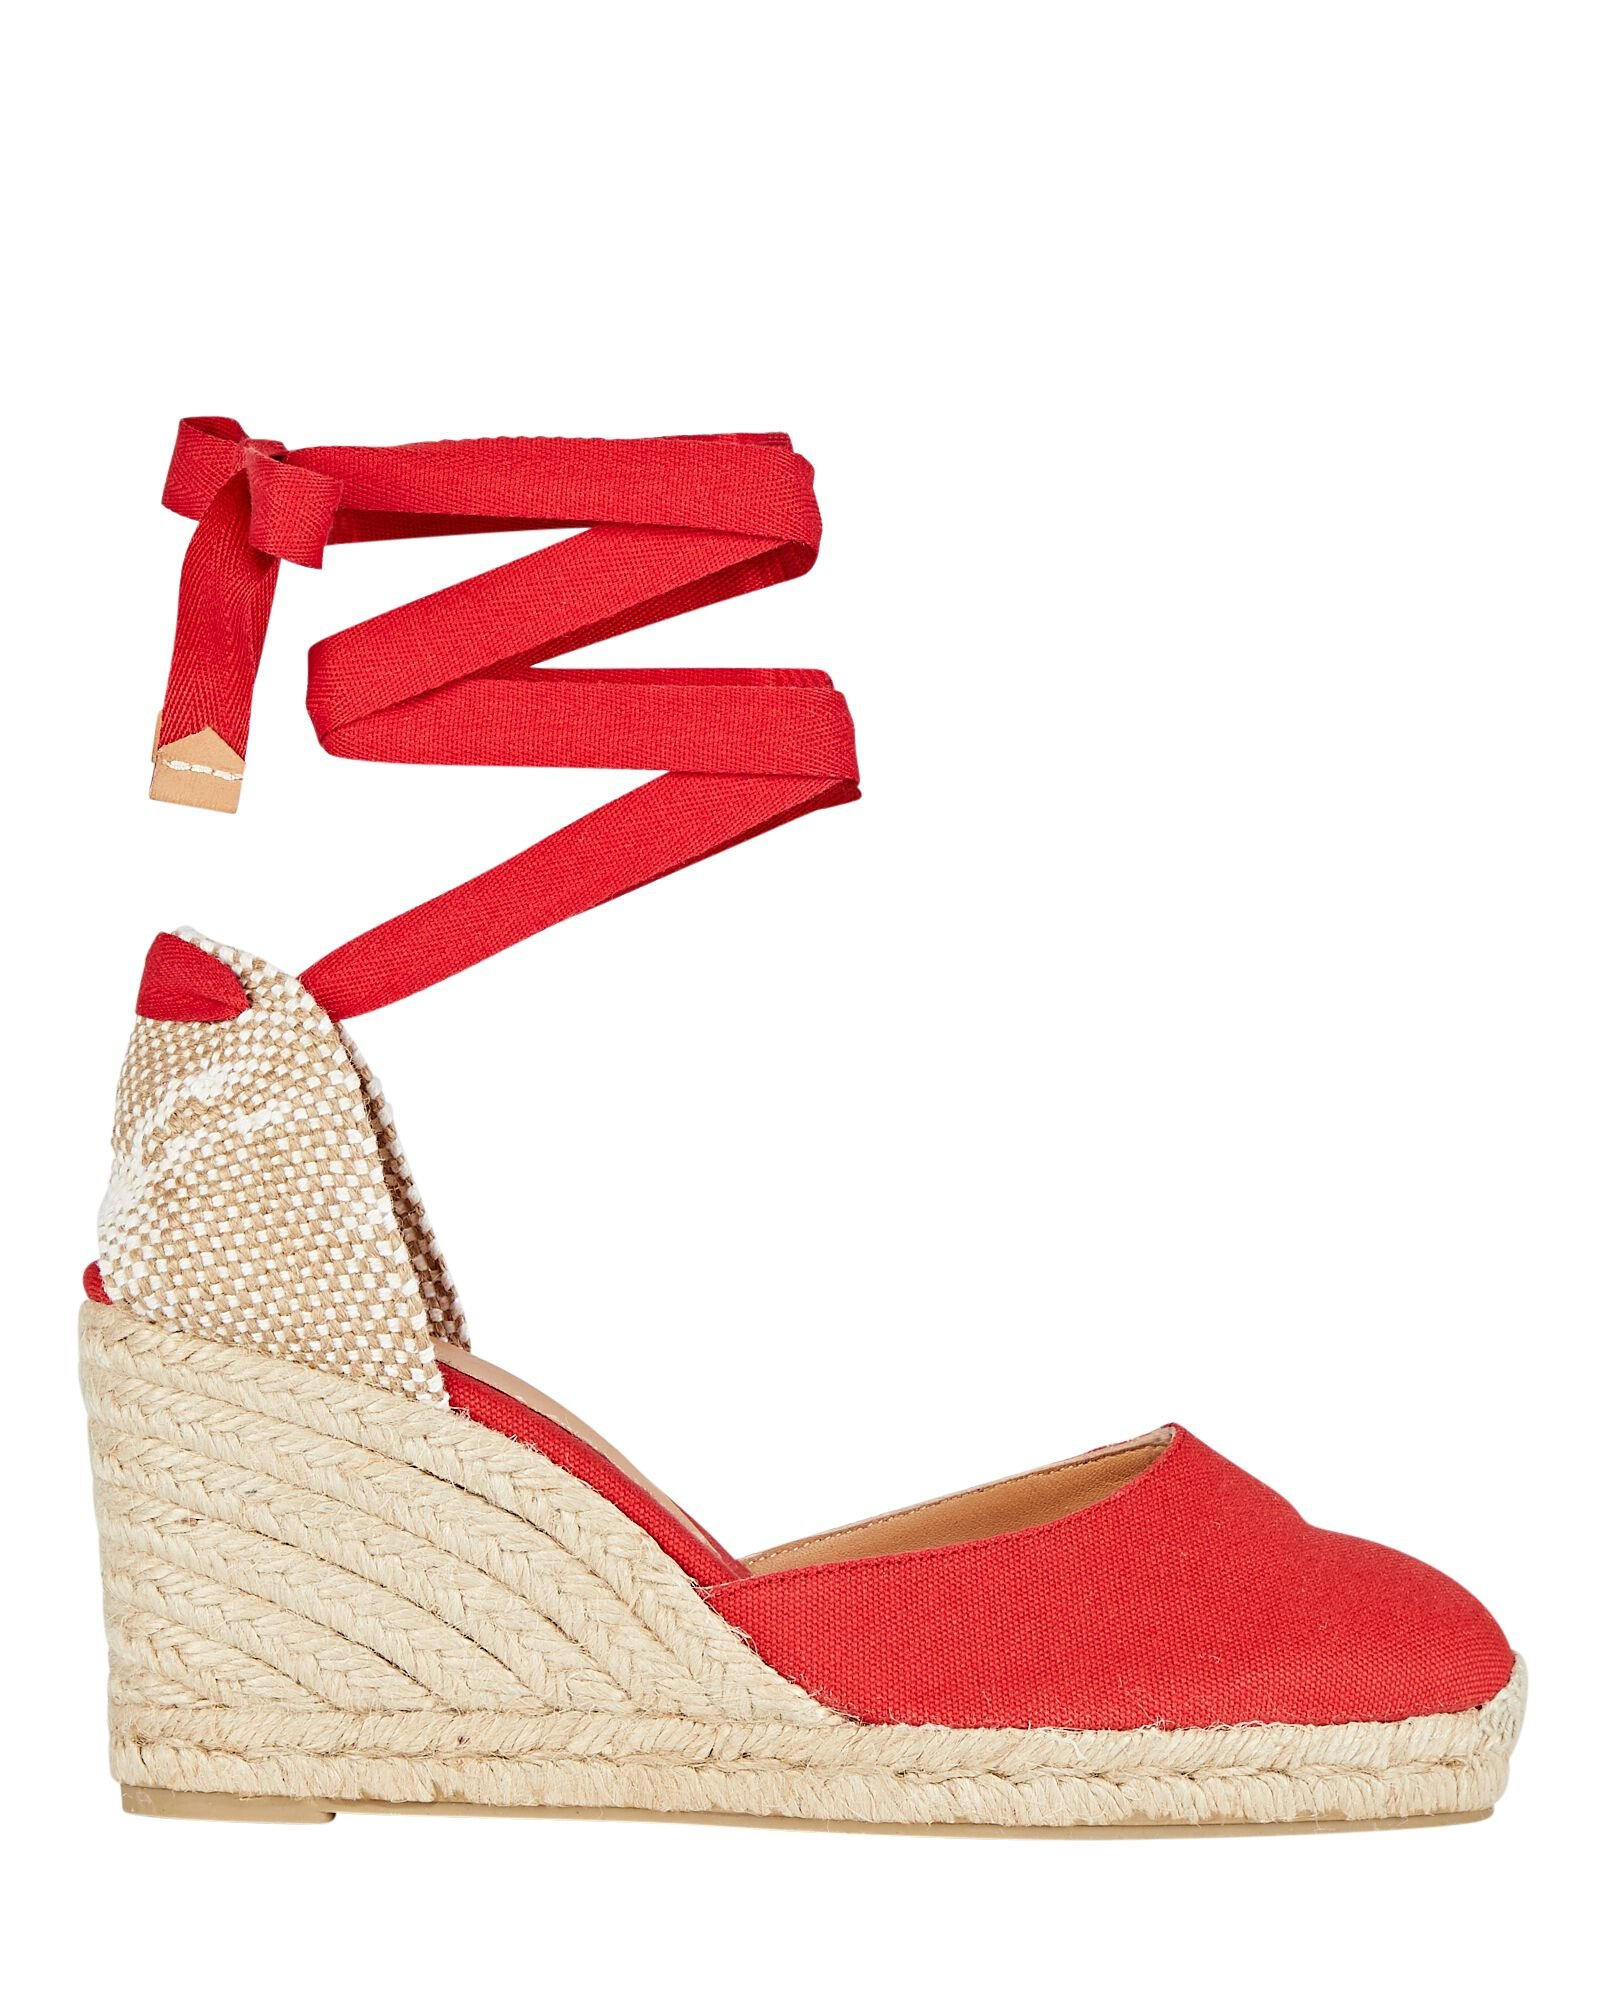 Carina 80 Espadrille Wedges, RED, hi-res